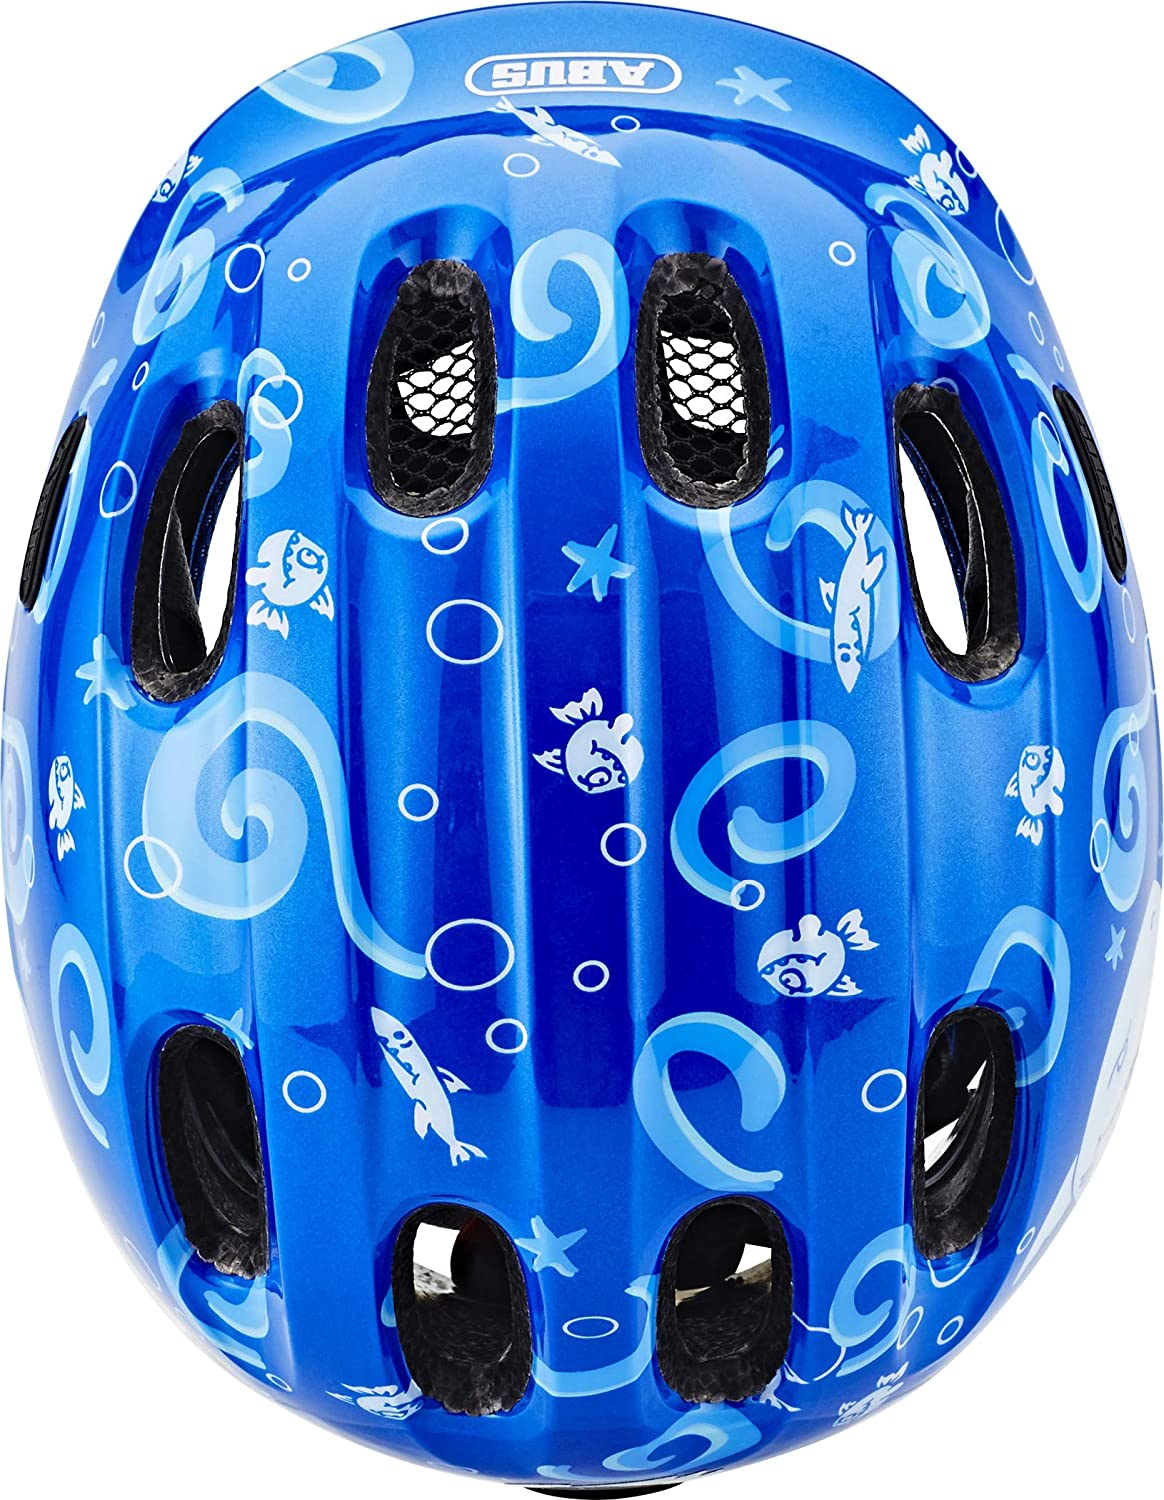 Abus Smiley 2.0 Casco de Bicicleta Ni/ños